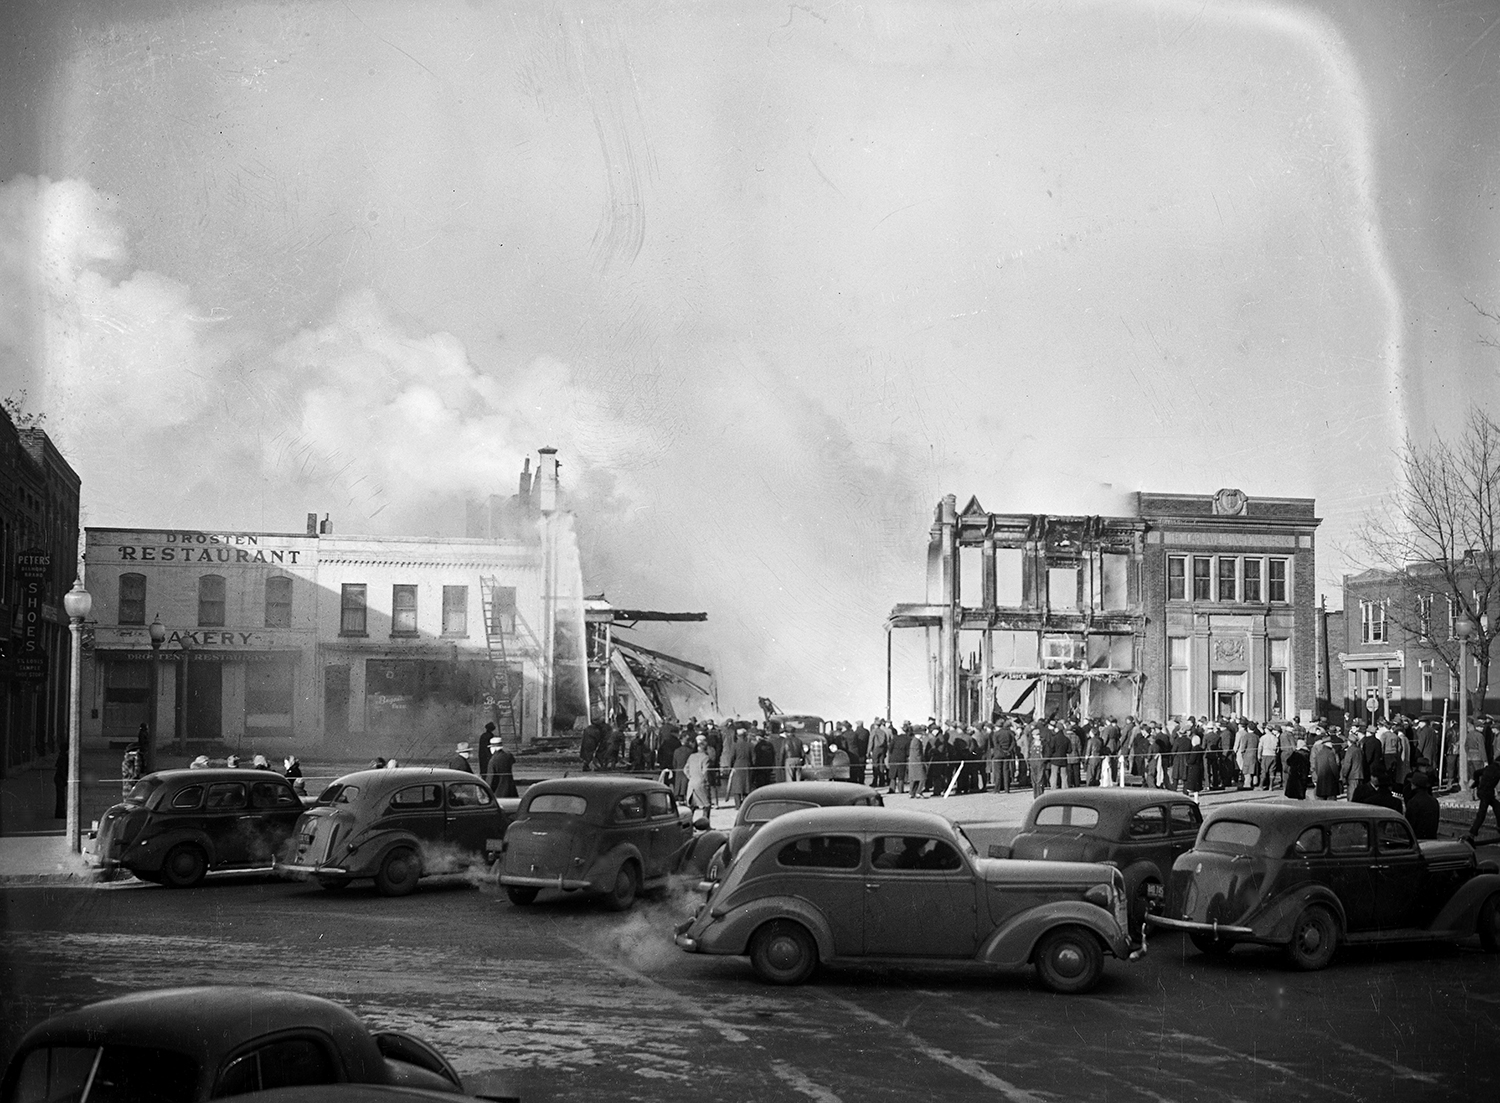 Fire destroys several buildings on the Carlinville public square Jan. 5, 1941. File/The State Journal-Register